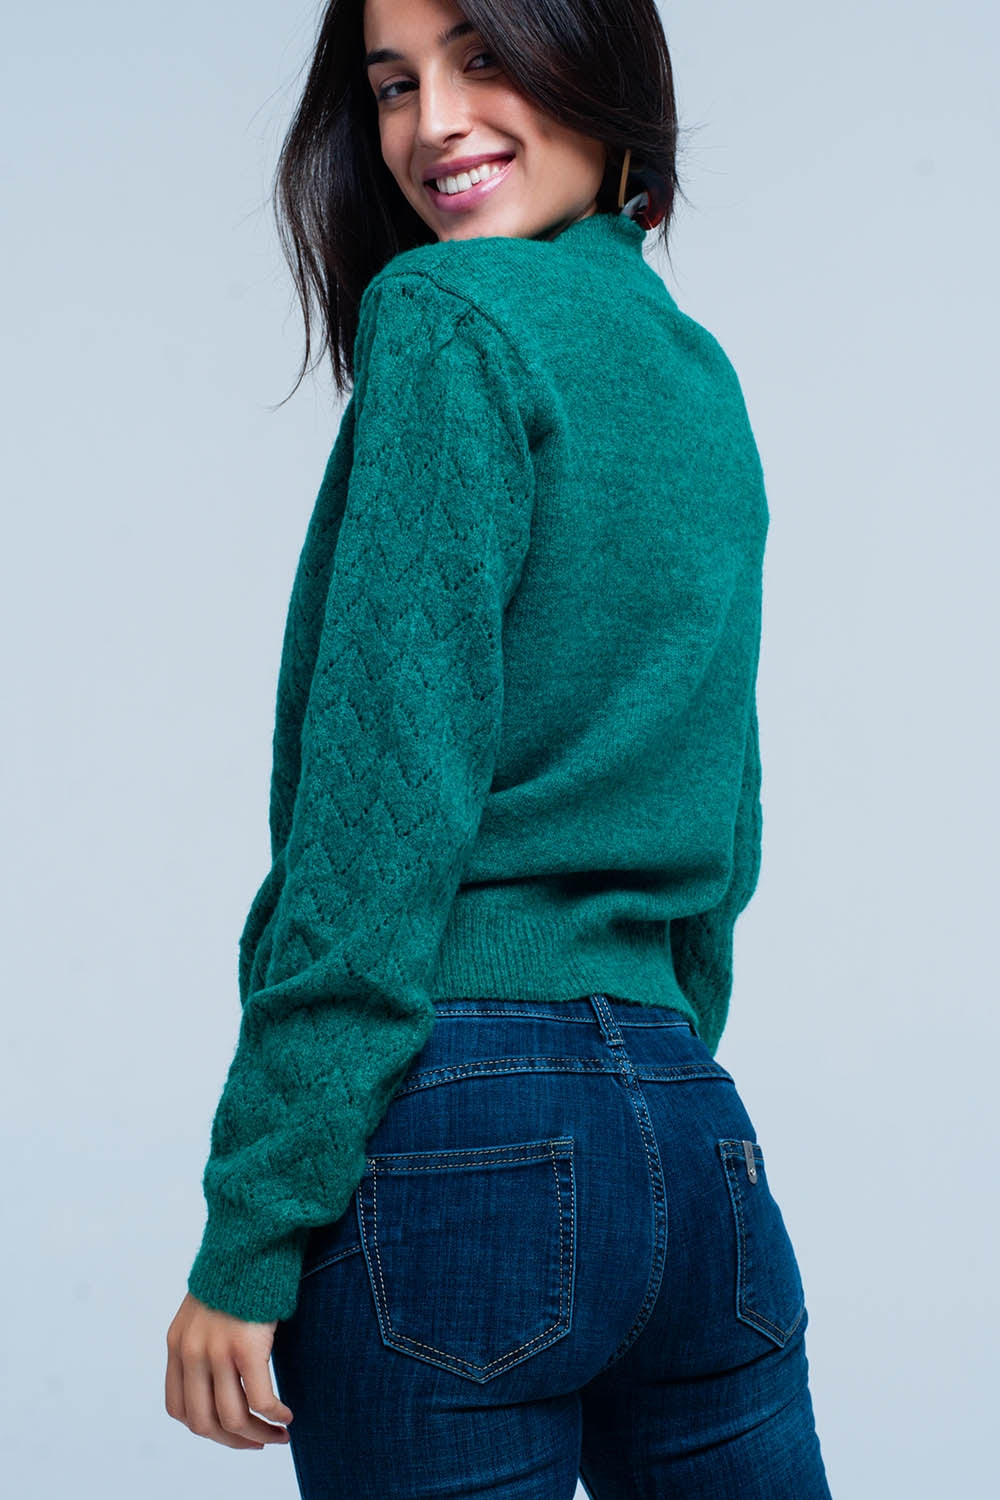 Green knitted sweater with crew neck